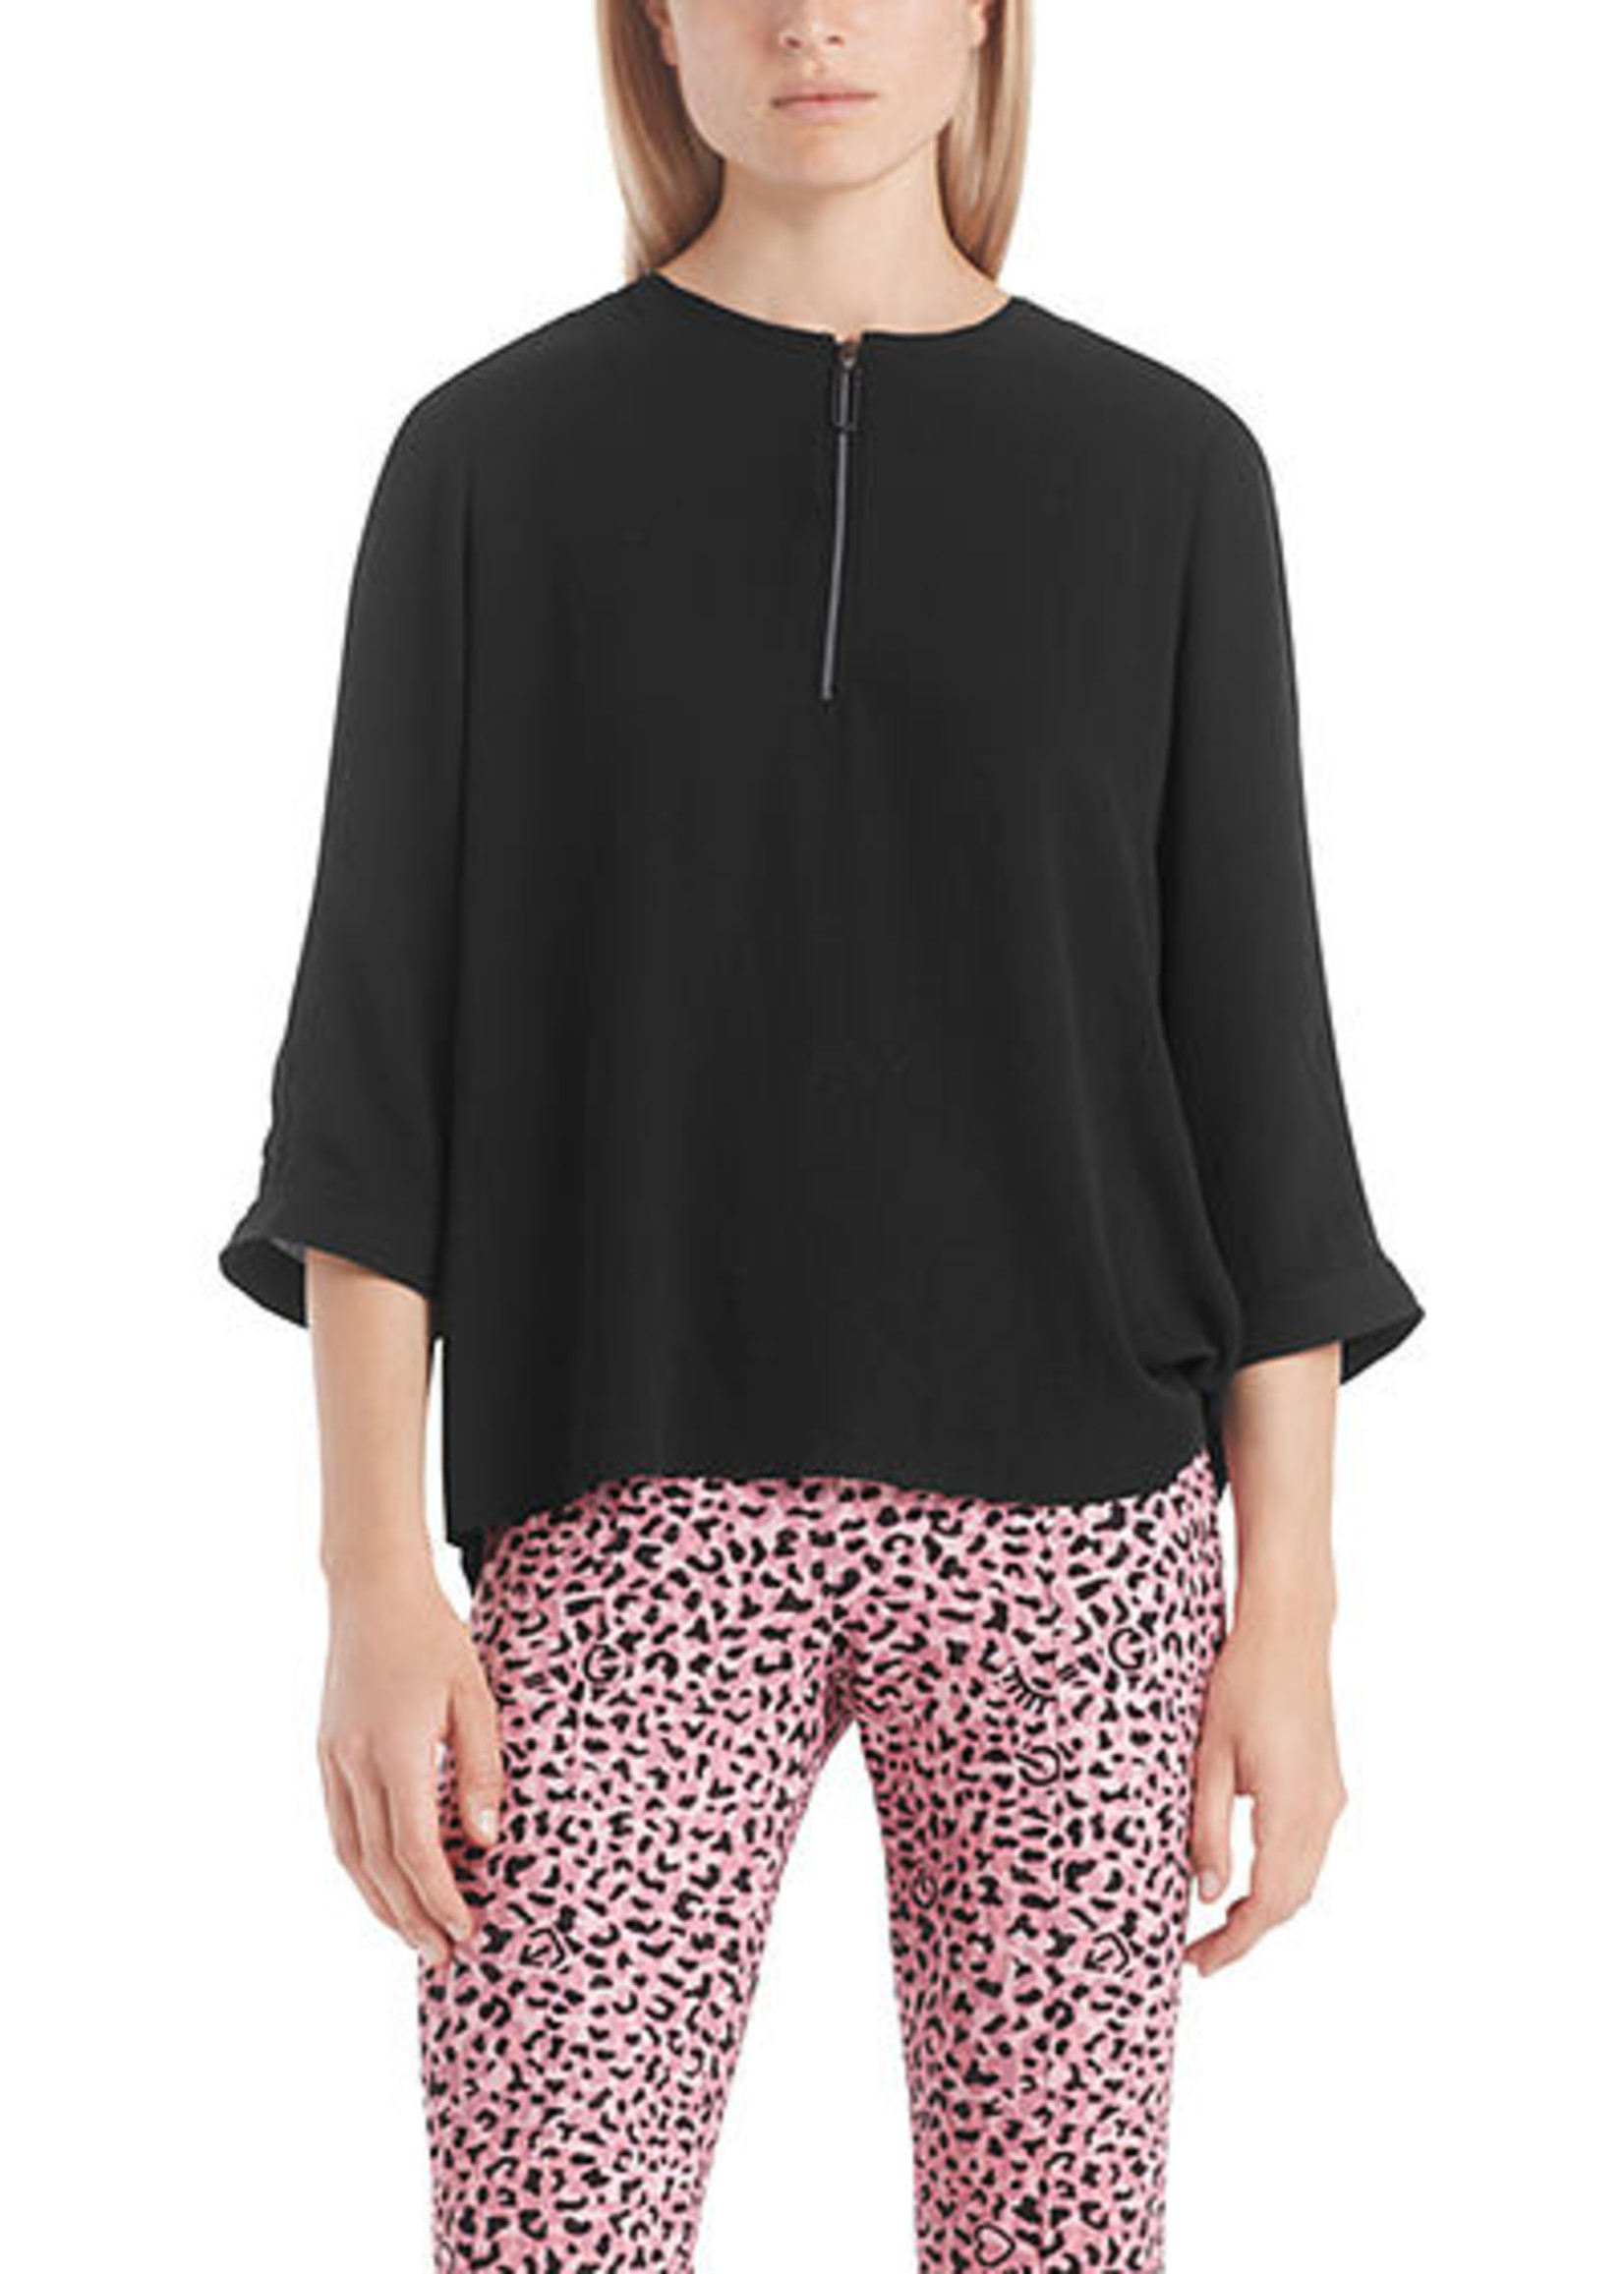 Marccain Sports Blouse RS 55.10 W41 black